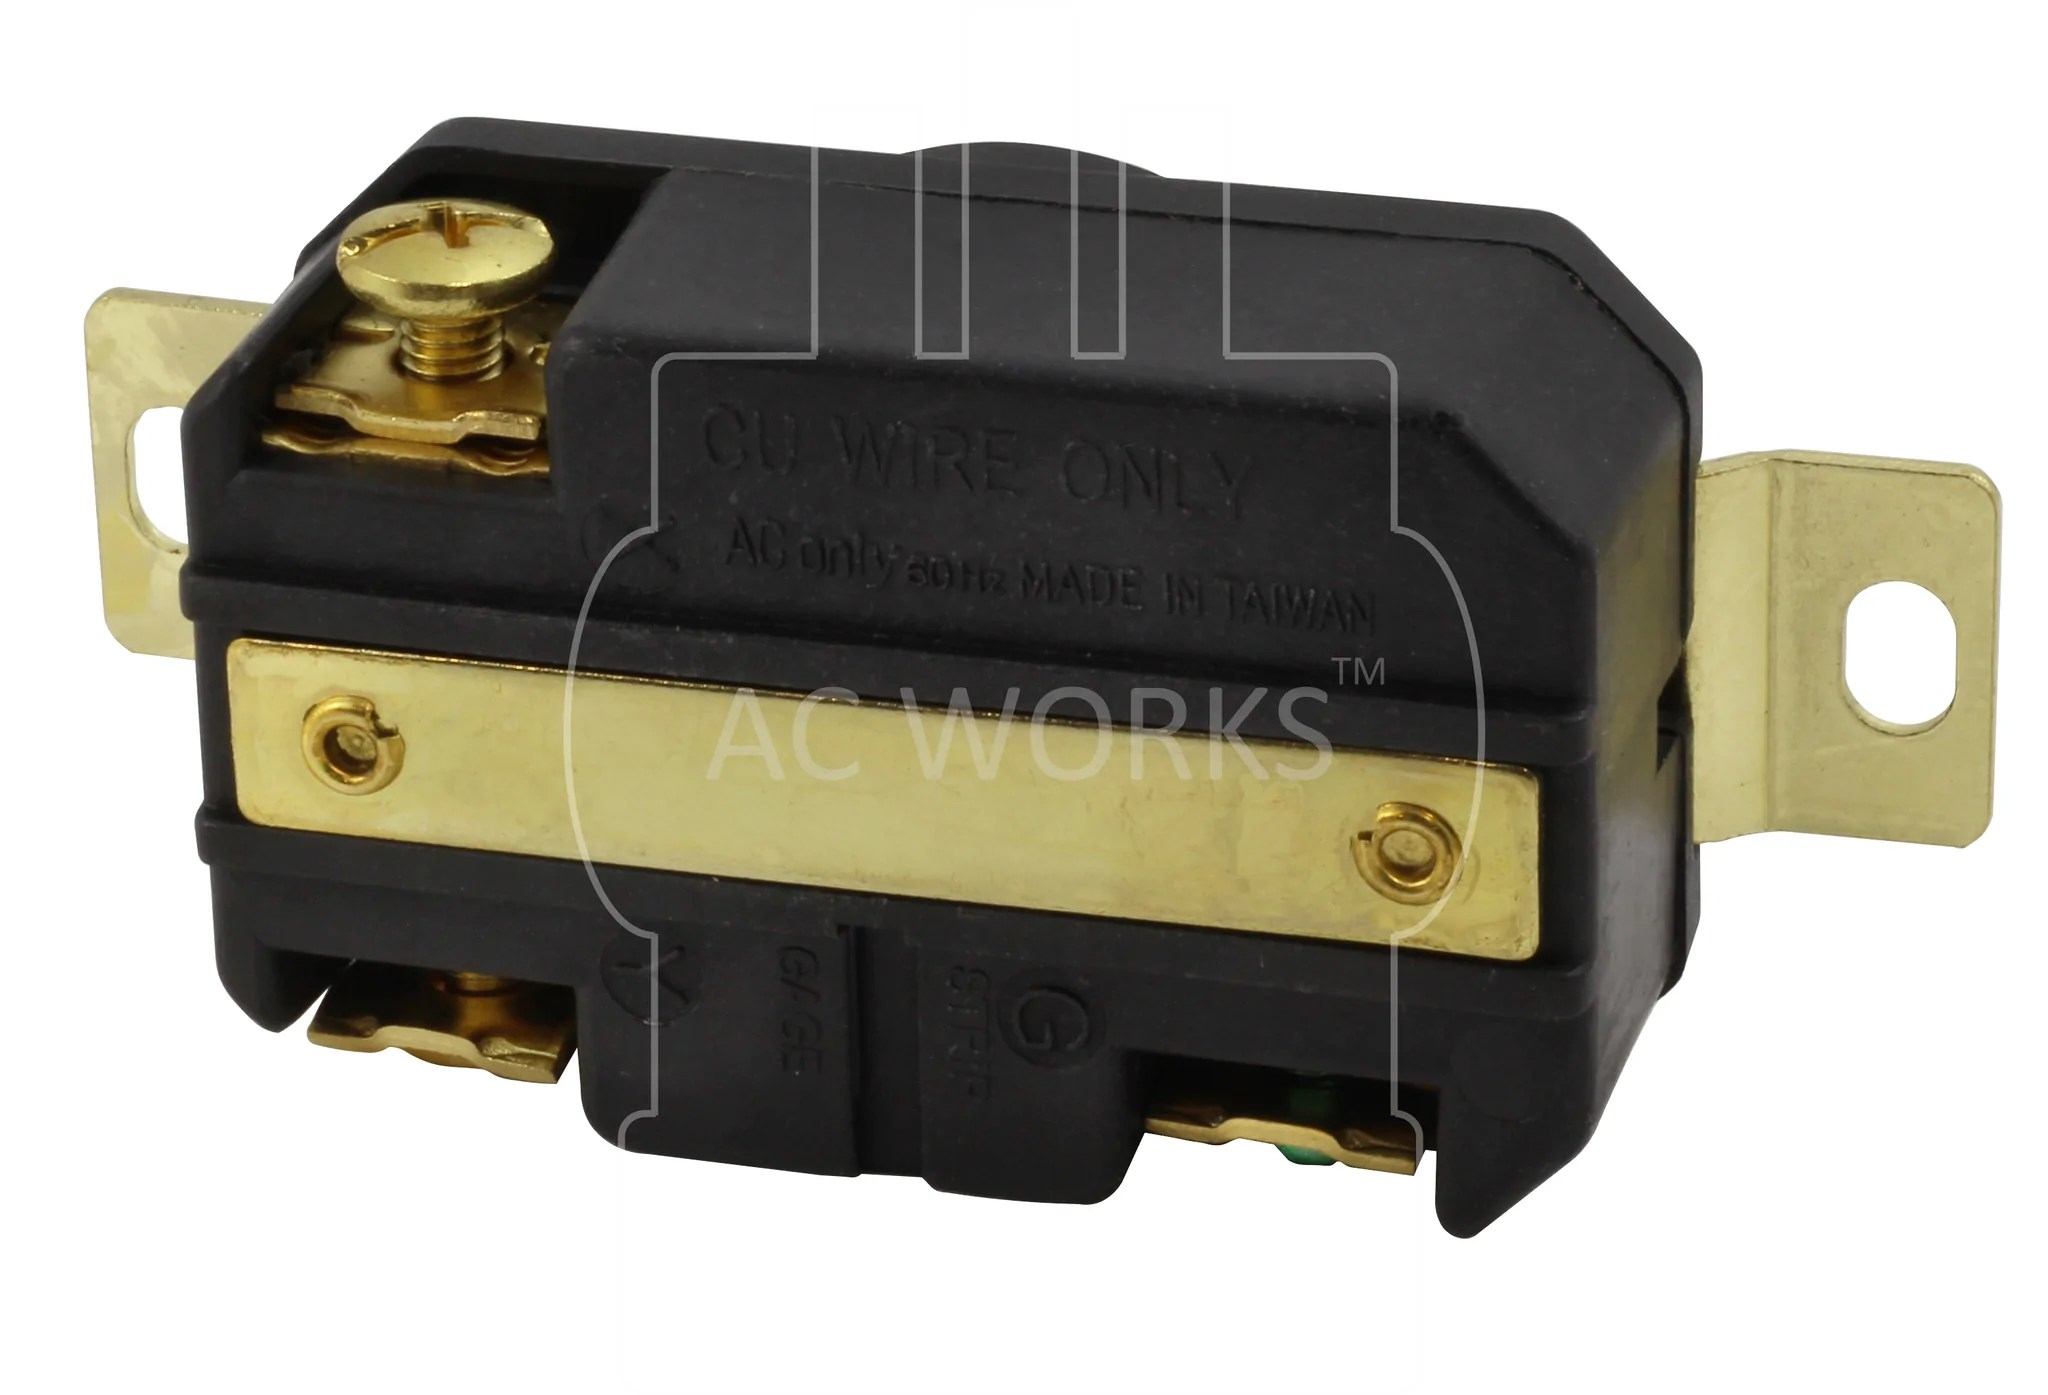 small resolution of  fml620r ac works ac connectors flush mounting locking receptacle